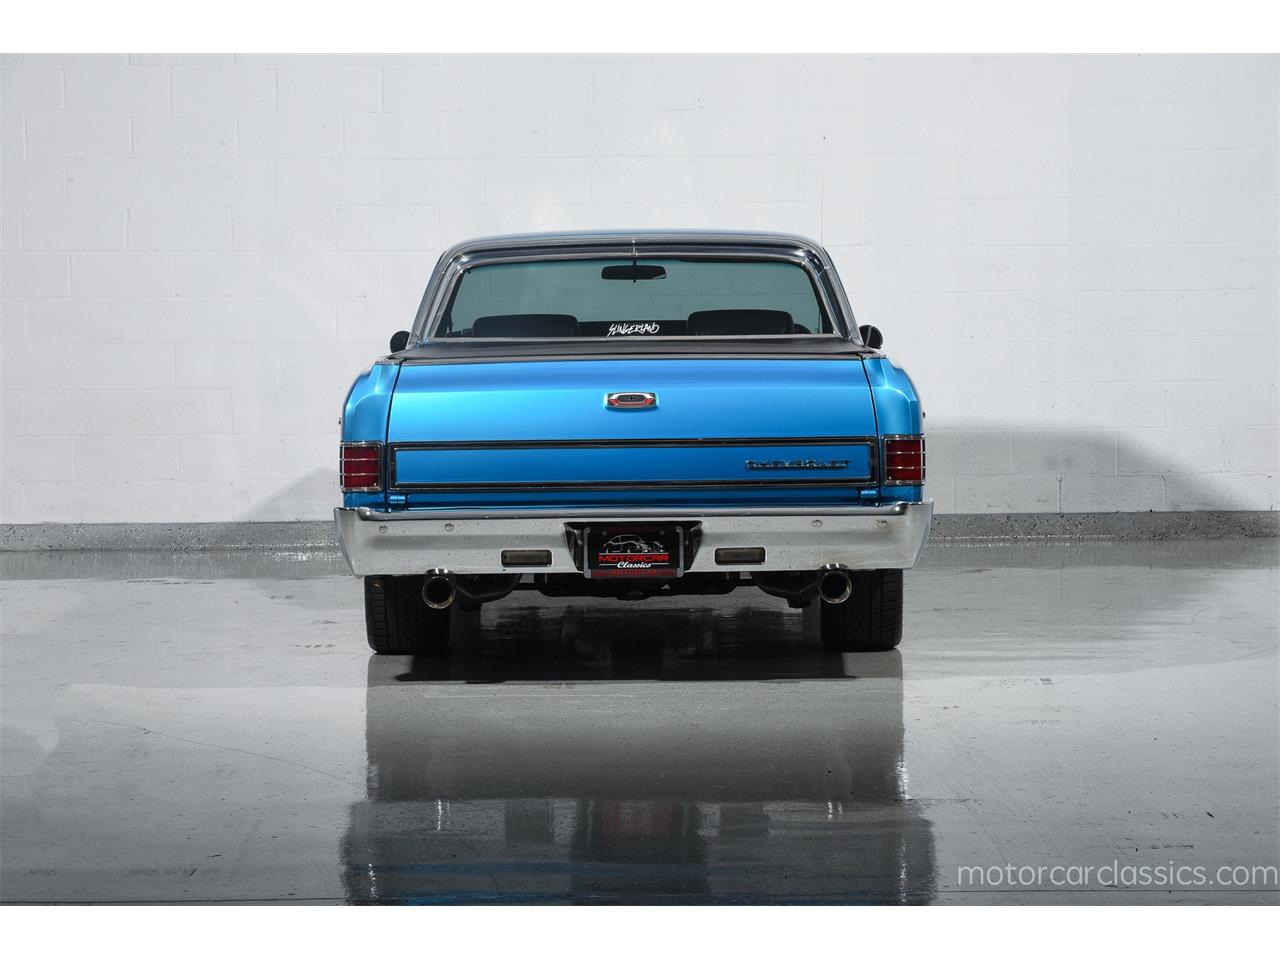 Large Picture of 1967 El Camino located in New York - $42,500.00 Offered by Motorcar Classics - MBON